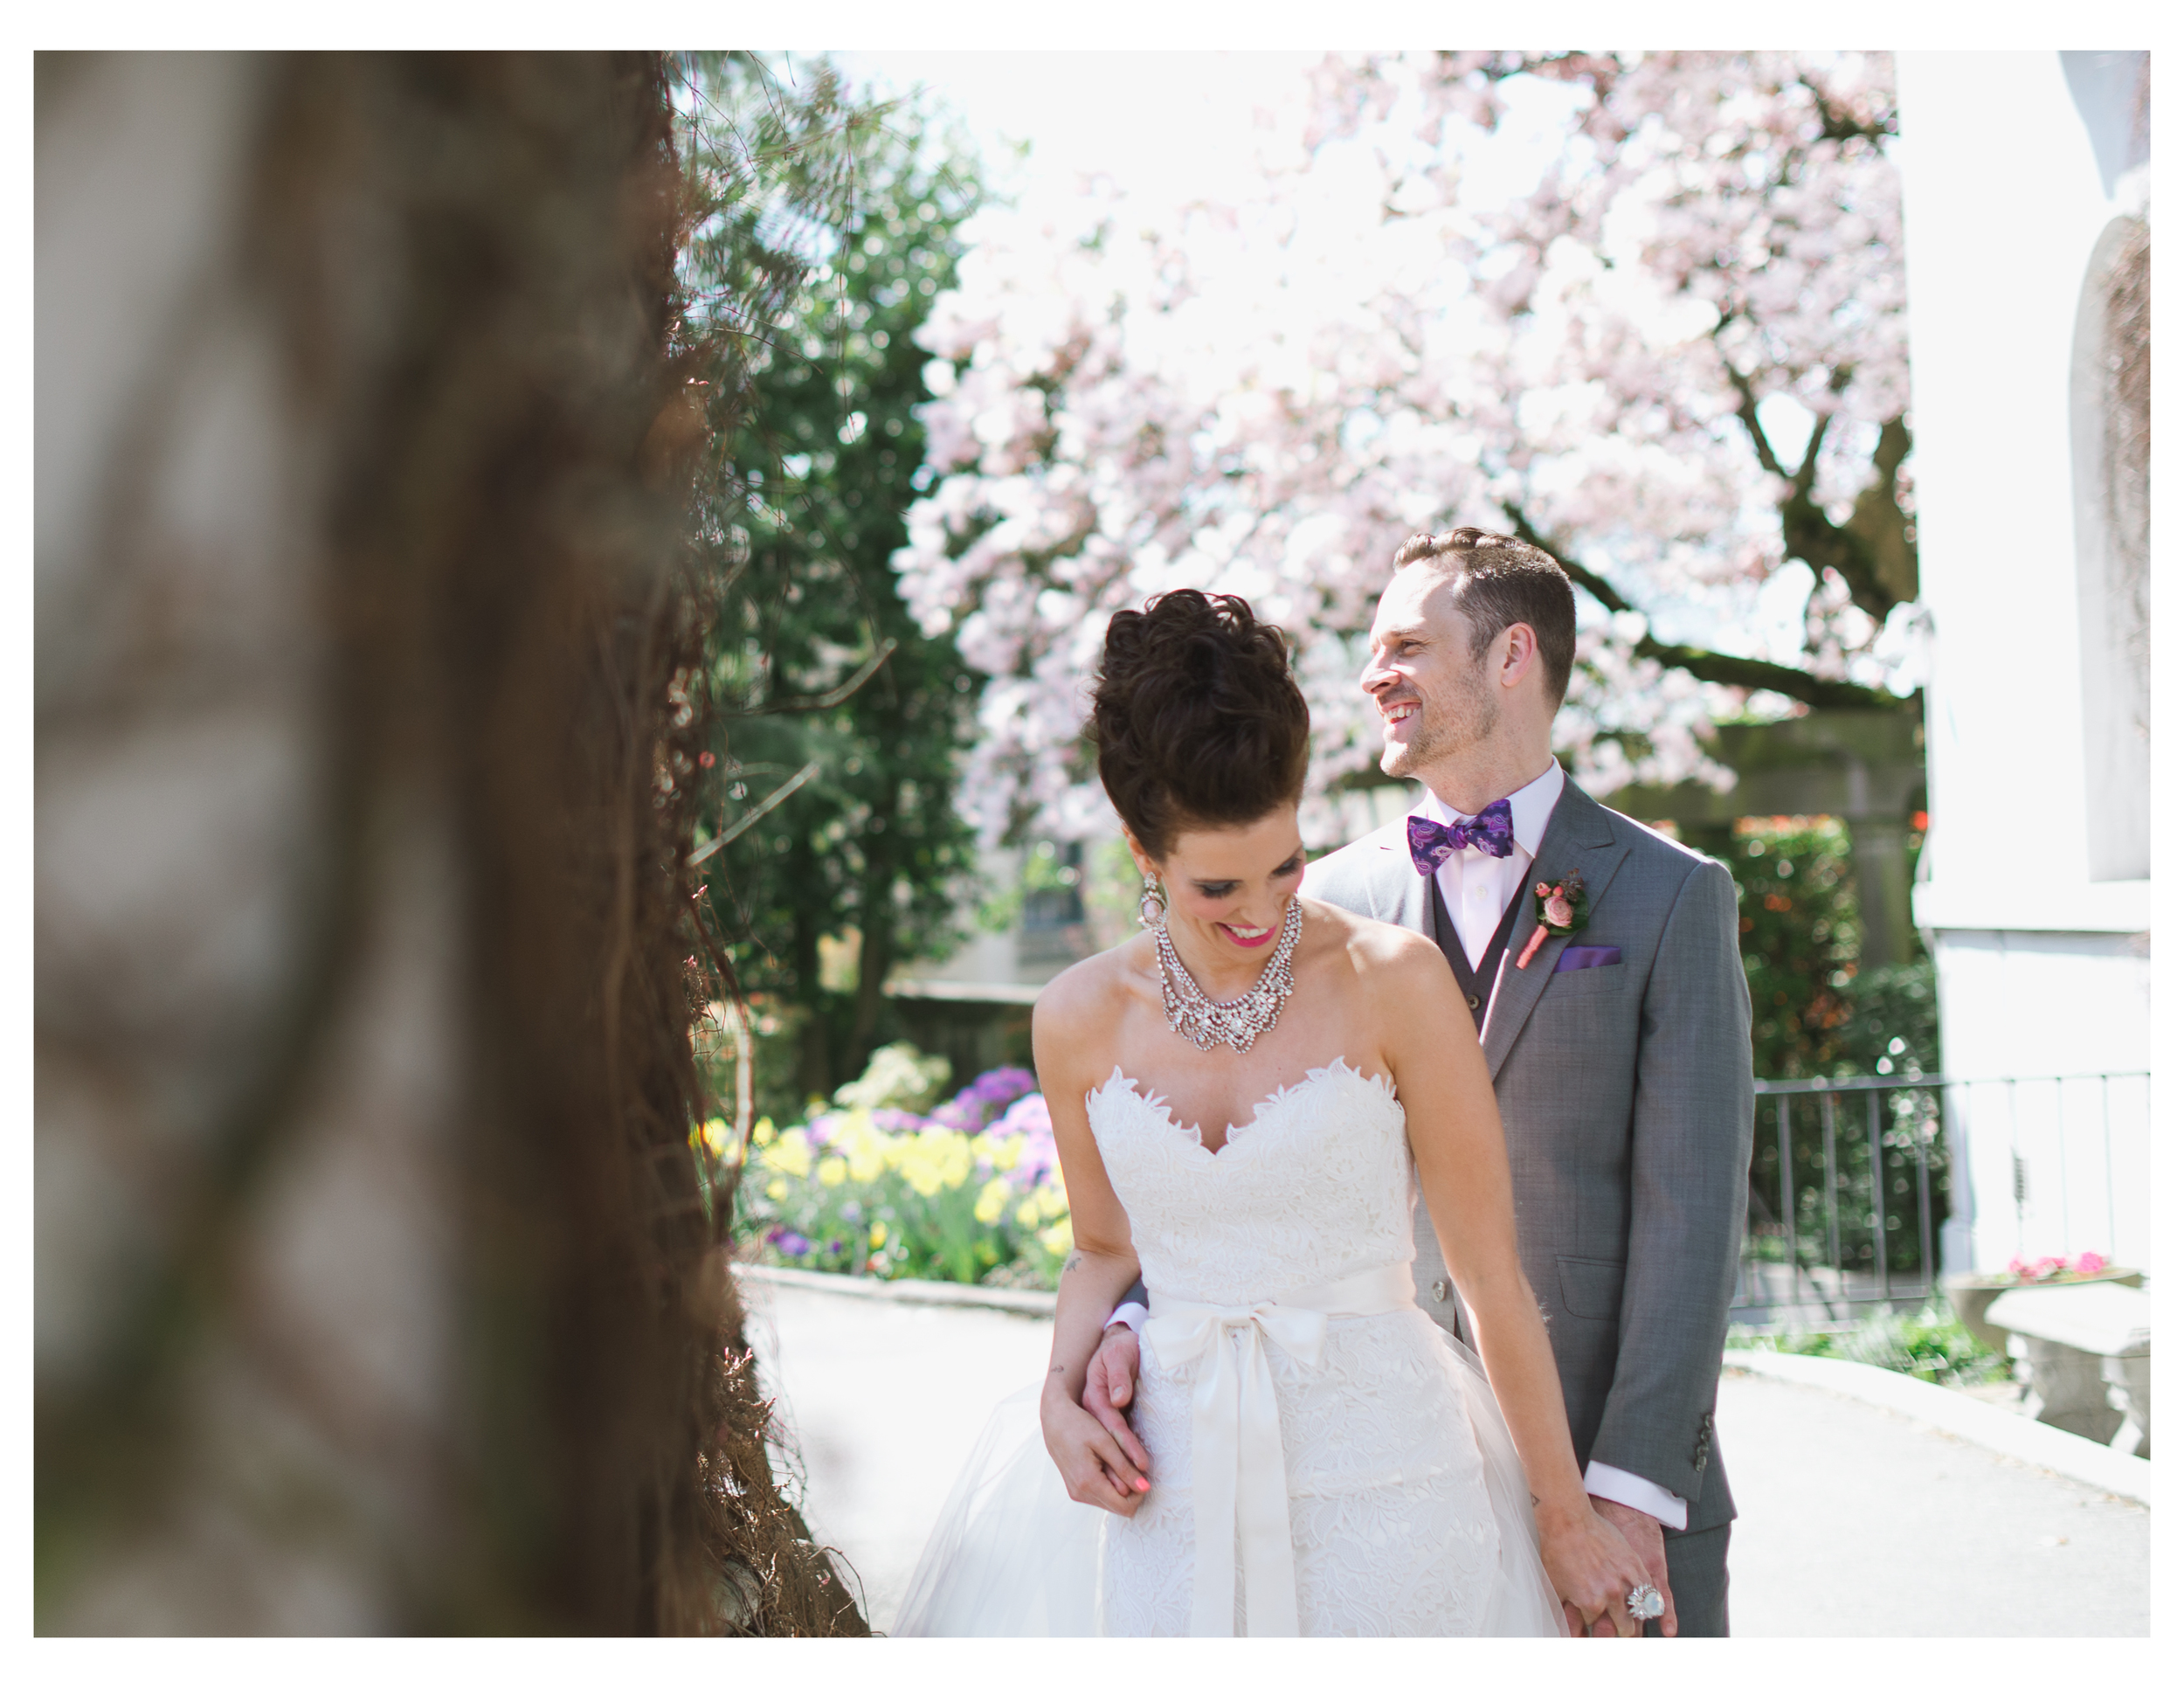 Katie Powell Photography_Vancouver_Wedding_Hycroft Manor-4.jpg